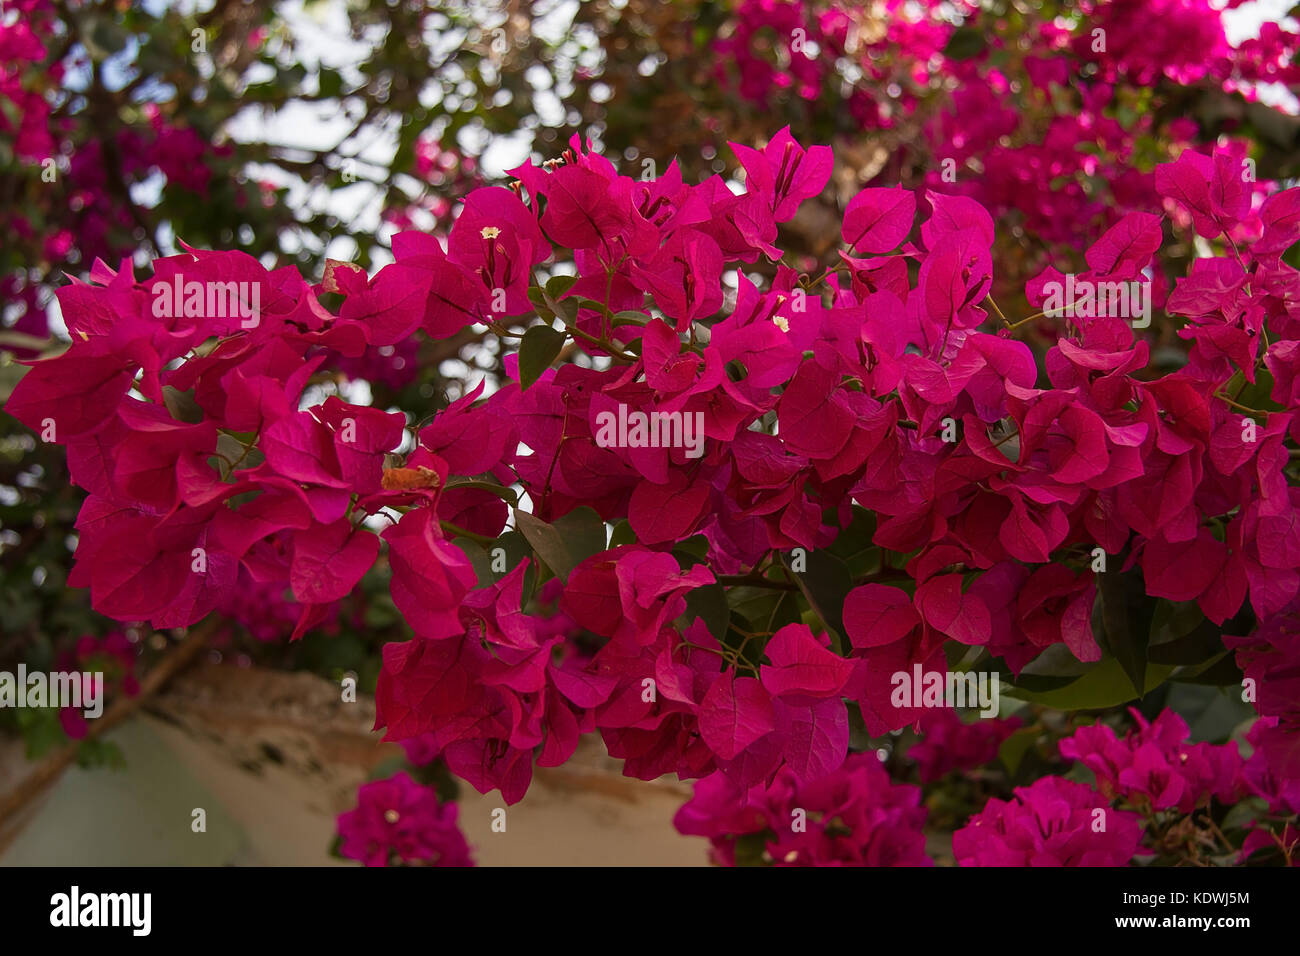 Beautiful flowers of india stock photos beautiful flowers of india photo of beautiful flowers on a tree in india stock image izmirmasajfo